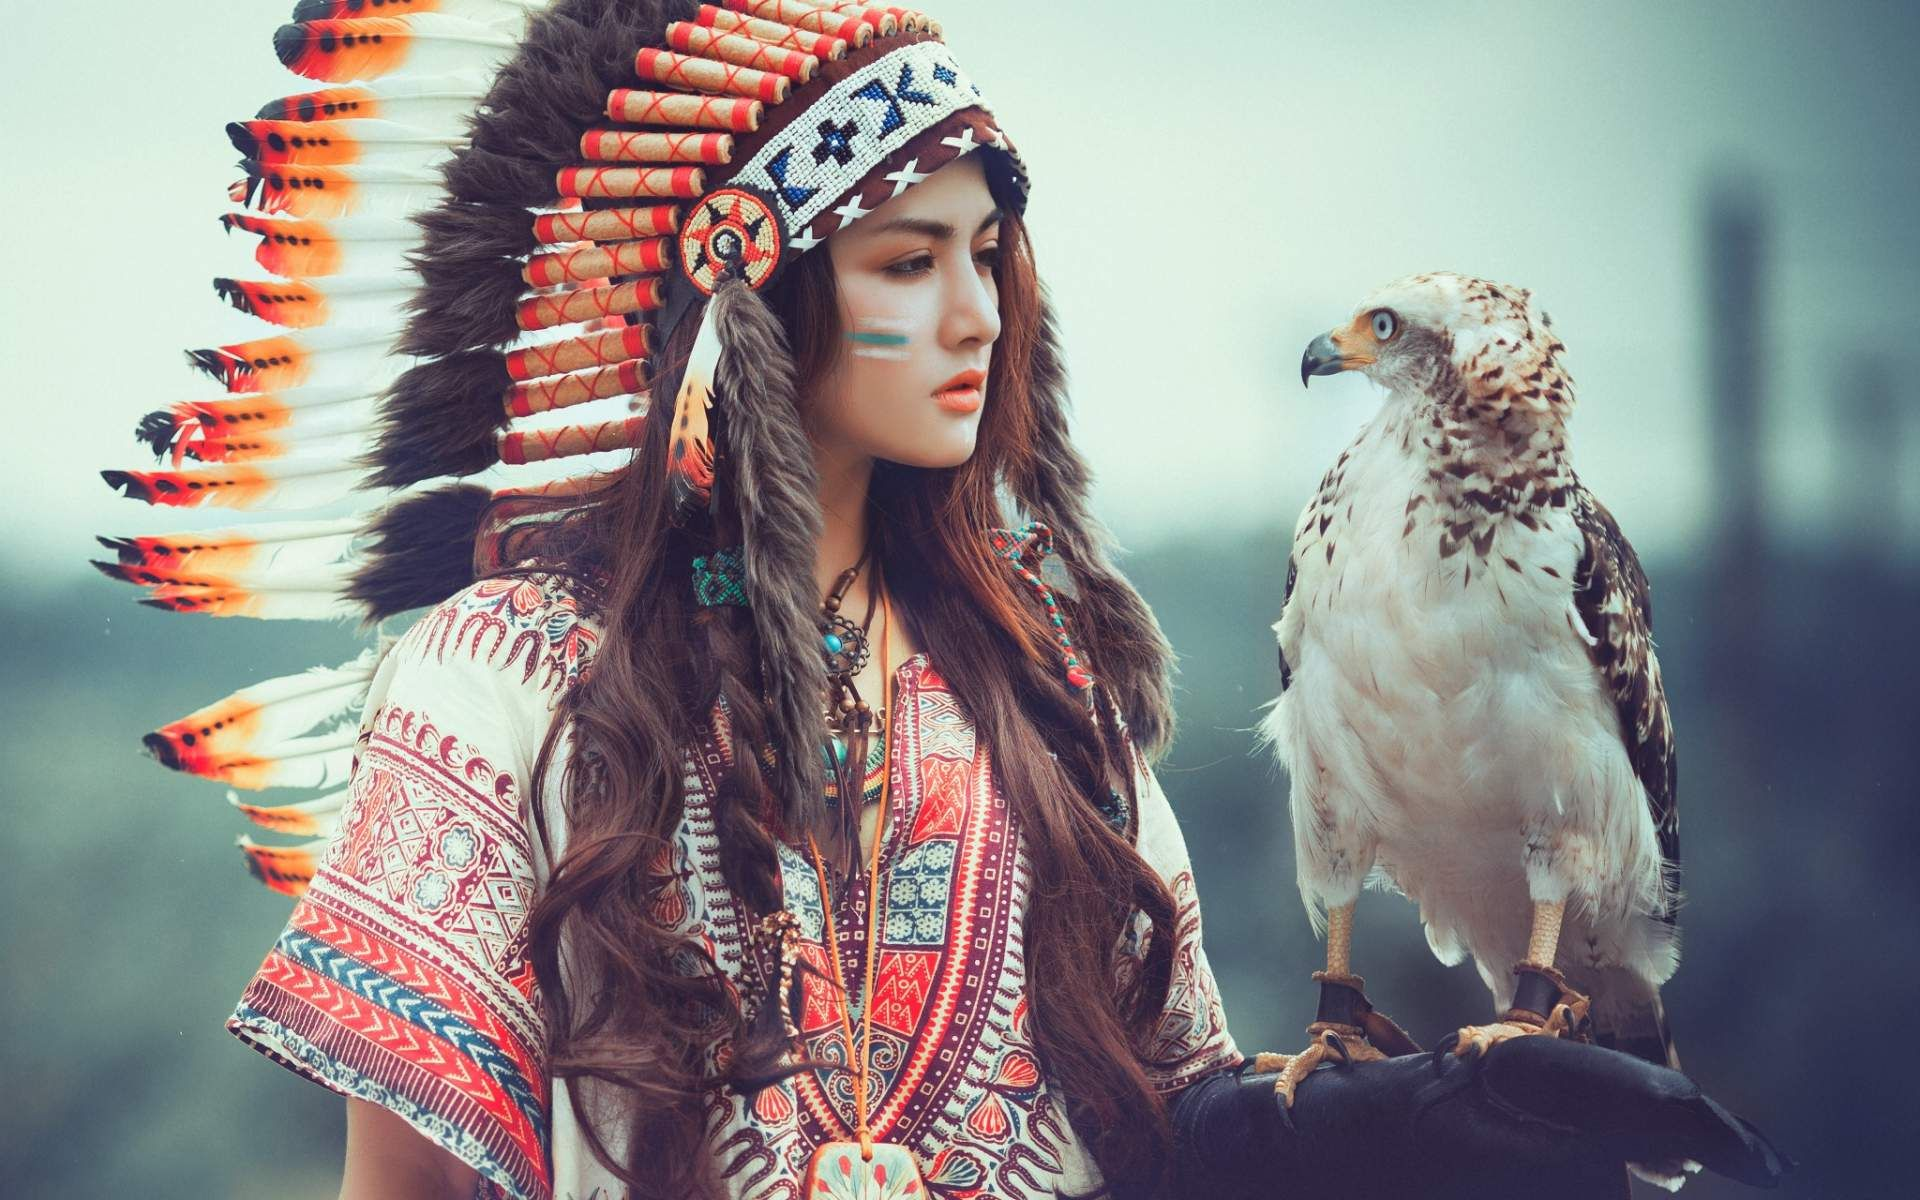 american indian girl hd wallpaper for desktop and mobile in high